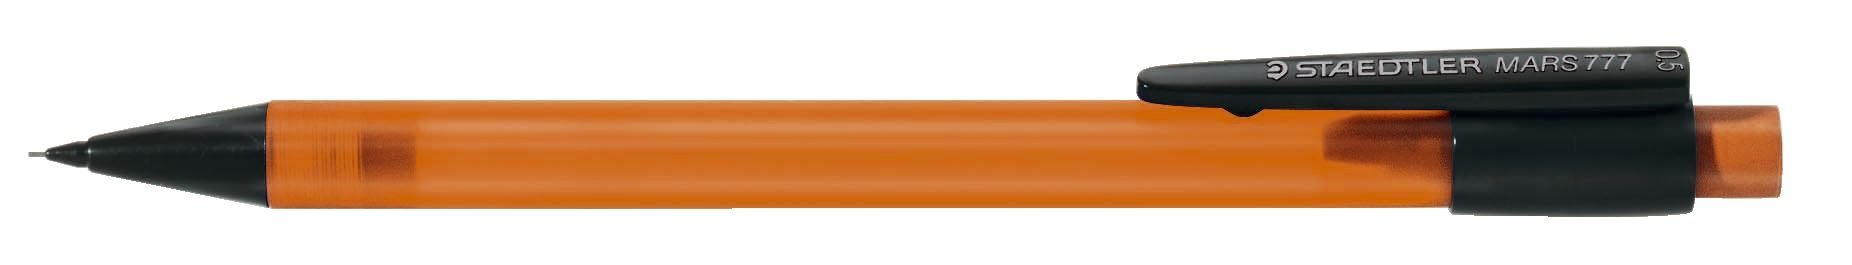 Druckbleistift graphite 777, 0,5 mm, B, orange transparent